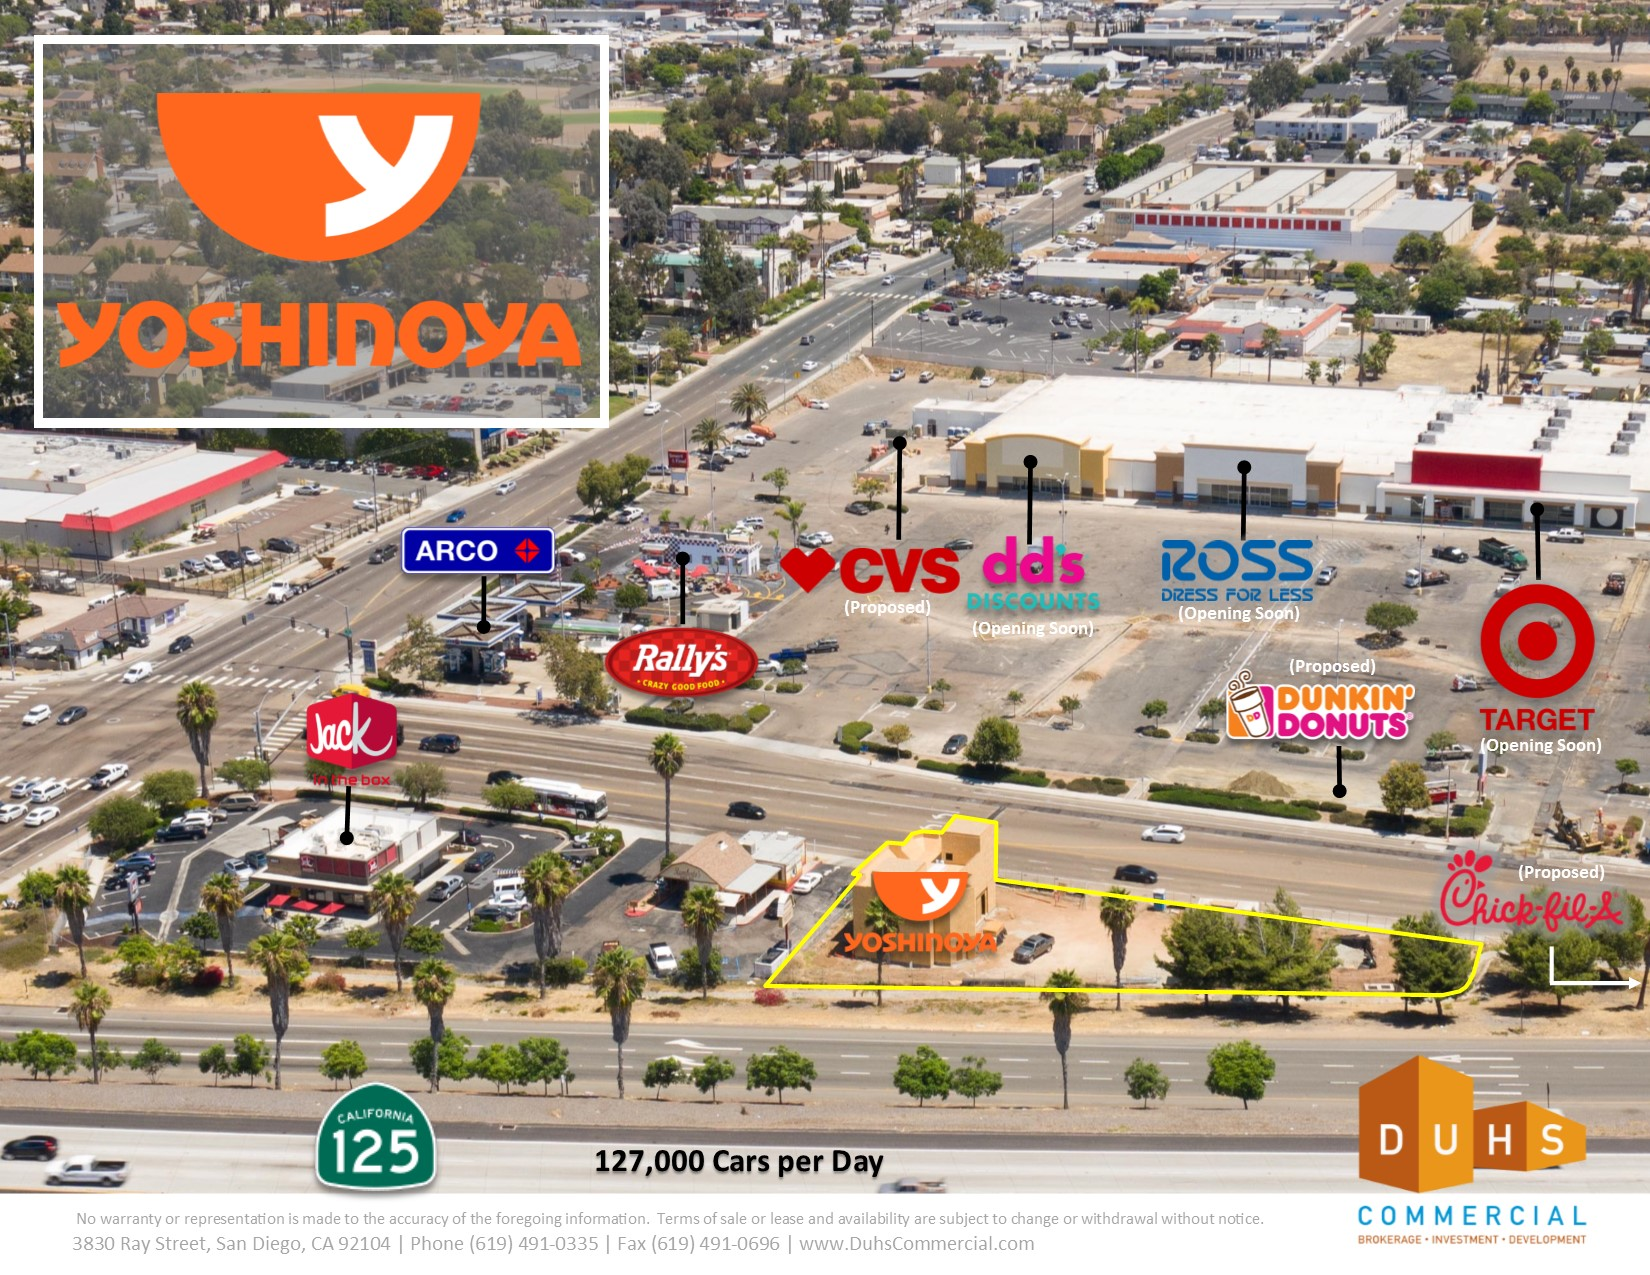 Yoshinoya Pg1 Logos Spring Valley